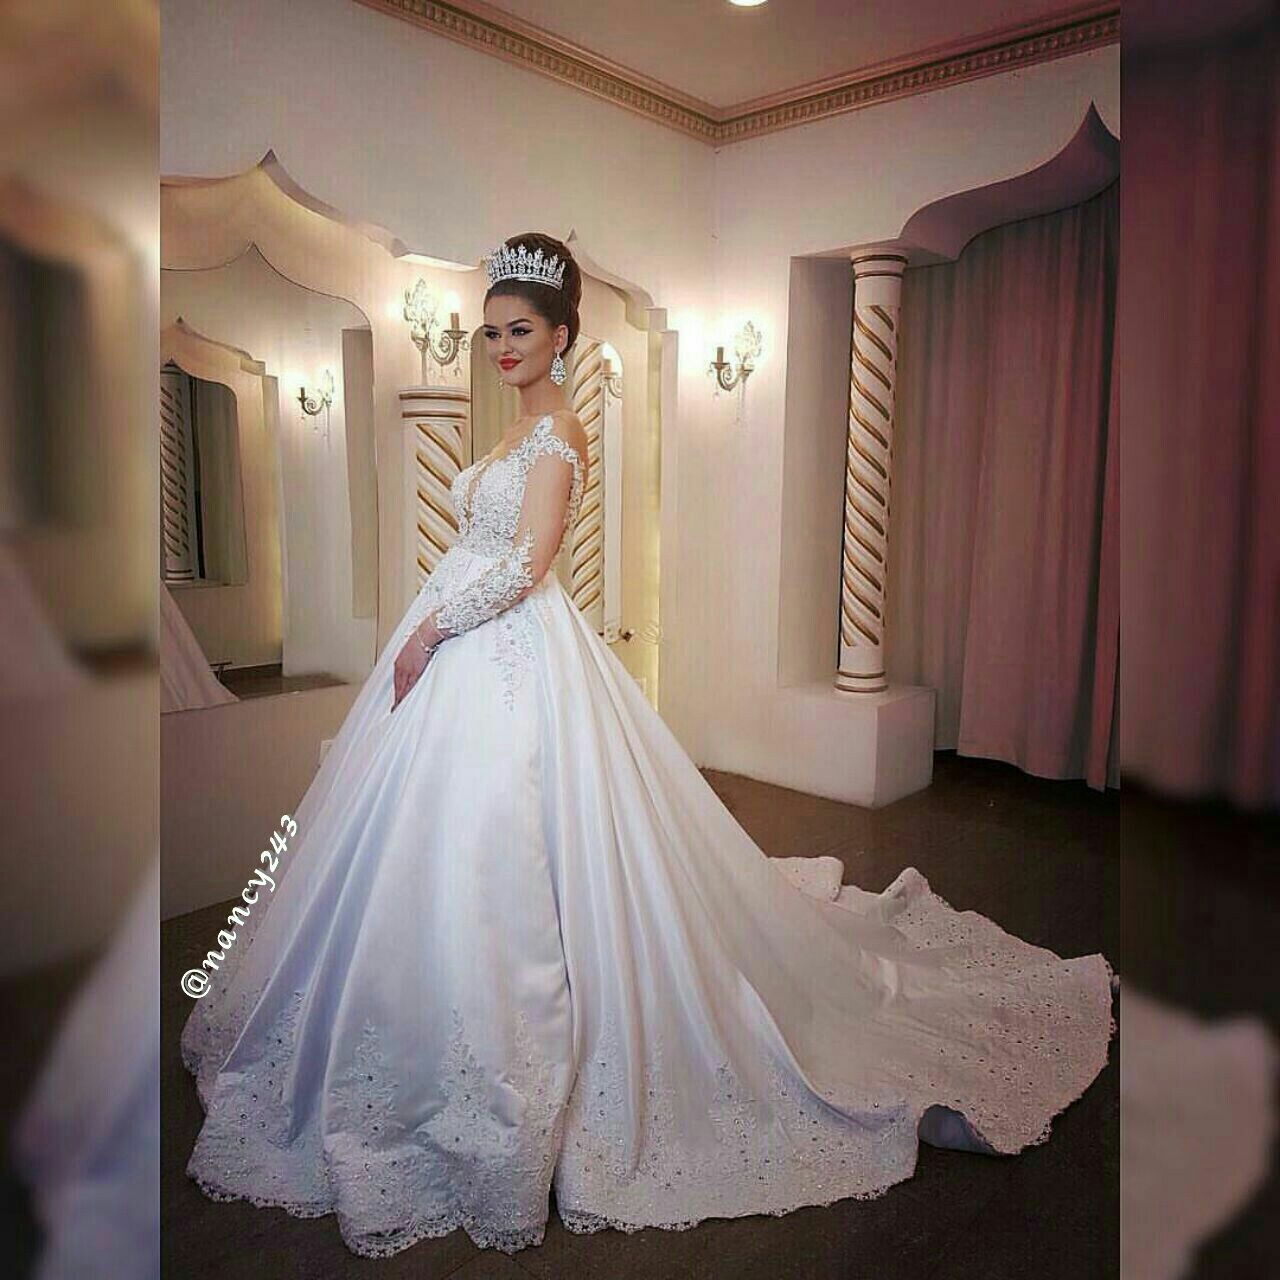 Filipino wedding dress  Pin by Jas on Say Yes To The Wedding Dress  Pinterest  Wedding